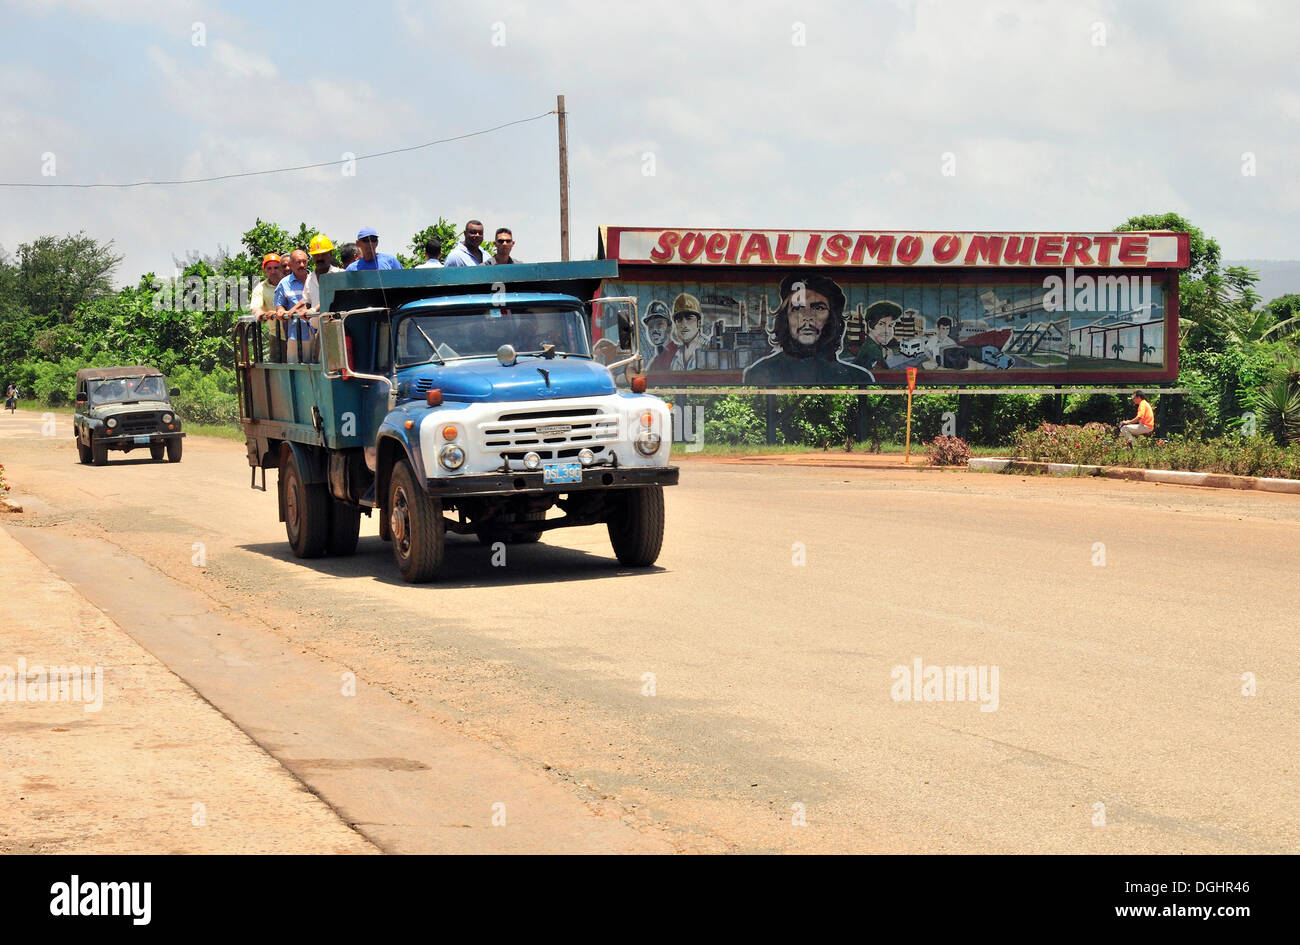 Truck with workers in front of socialist propaganda, Socialismo o muerte, socialism or death, in Moa, Cuba, Caribbean - Stock Image